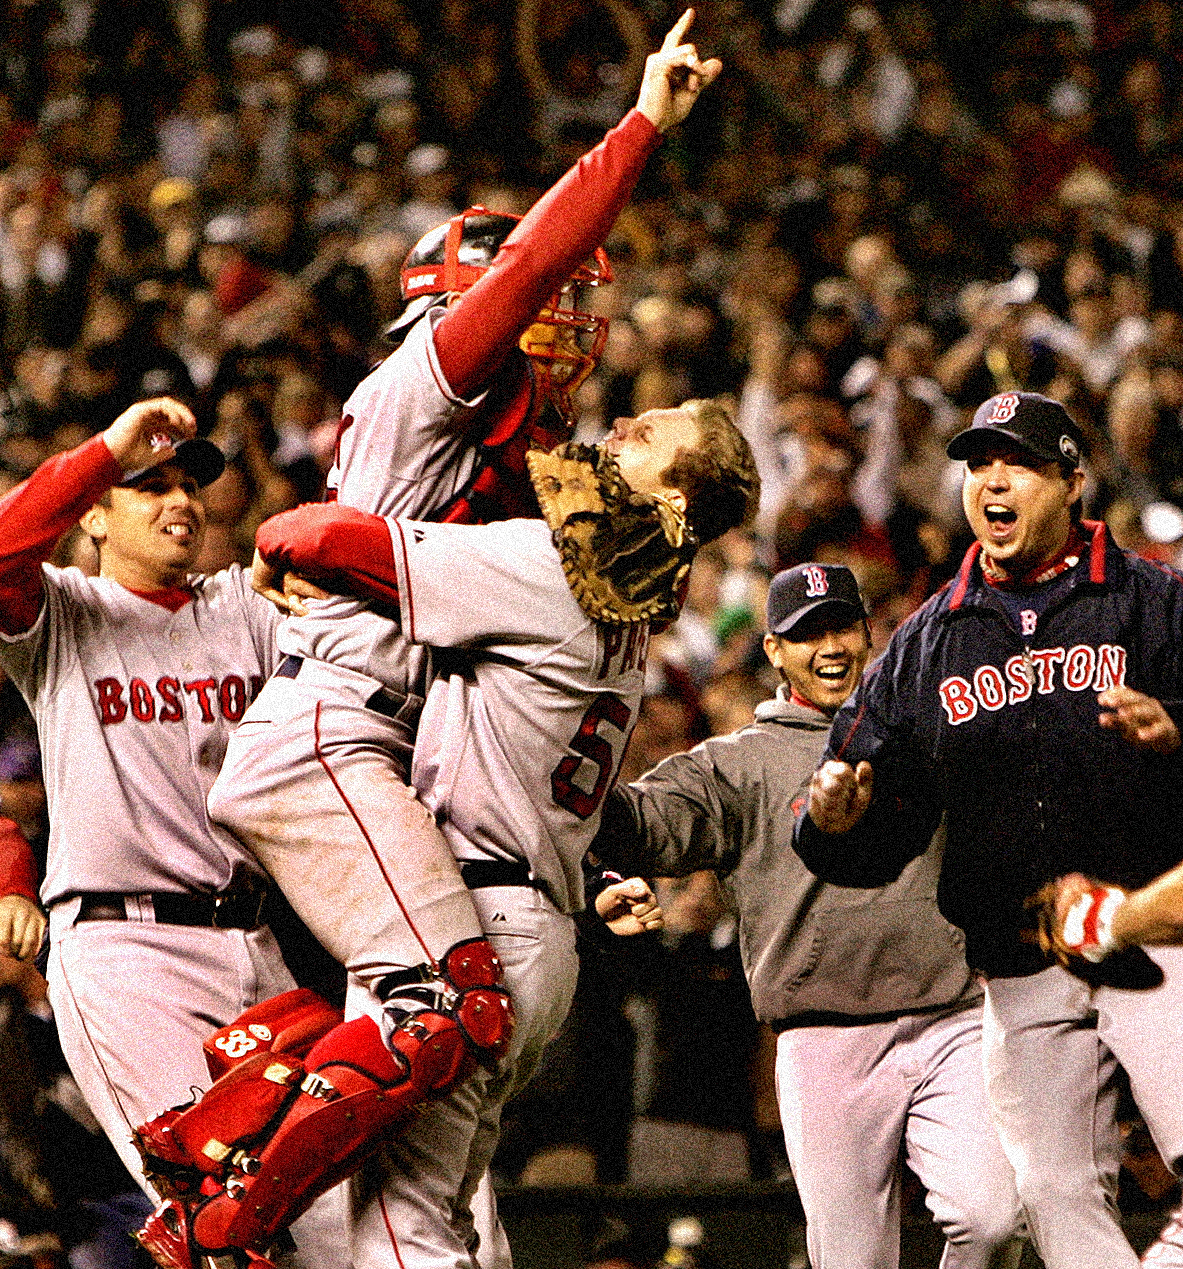 October 29, 2007 – Boston Red Sox: 2007 Repeat – Questions Follow A House Fire – L.A. Keeps Burning